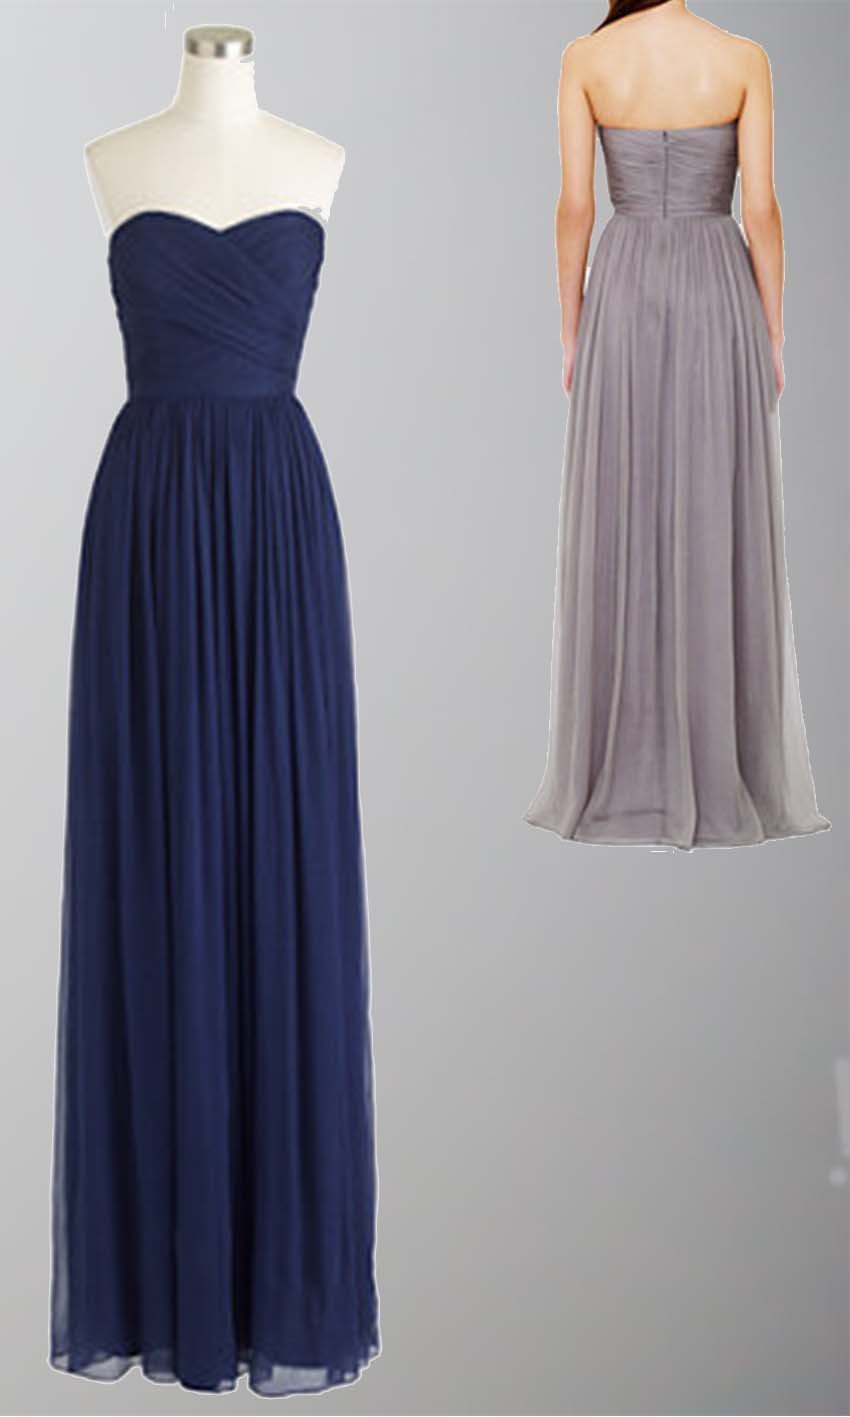 Blue Sweetheart Fitted Long Bridesmaid Dress UK KSP334 [KSP334] - £92.00 : Cheap Prom Dresses Uk, Bridesmaid Dresses, 2014 Prom & Evening Dresses, Look for cheap elegant prom dresses 2014, cocktail gowns, or dresses for special occasions? kissprom.co.uk offers various bridesmaid dresses, evening dress, free shipping to UK etc.